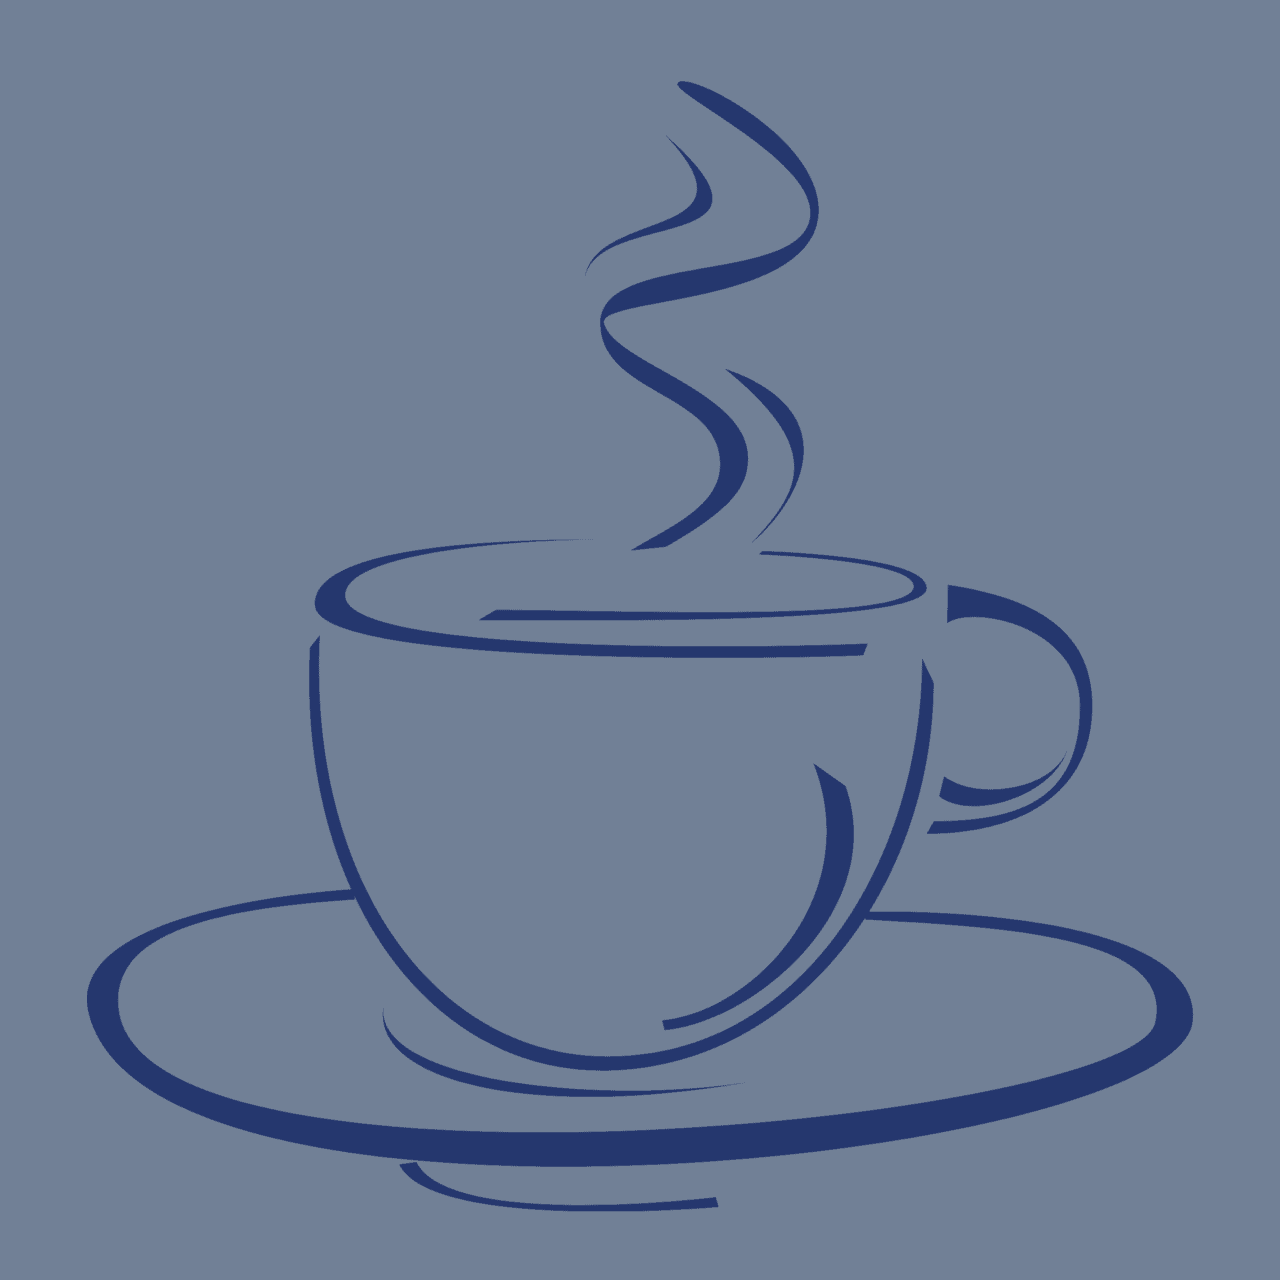 feature for vote best coffee shop in helotes with a steaming coffee cup